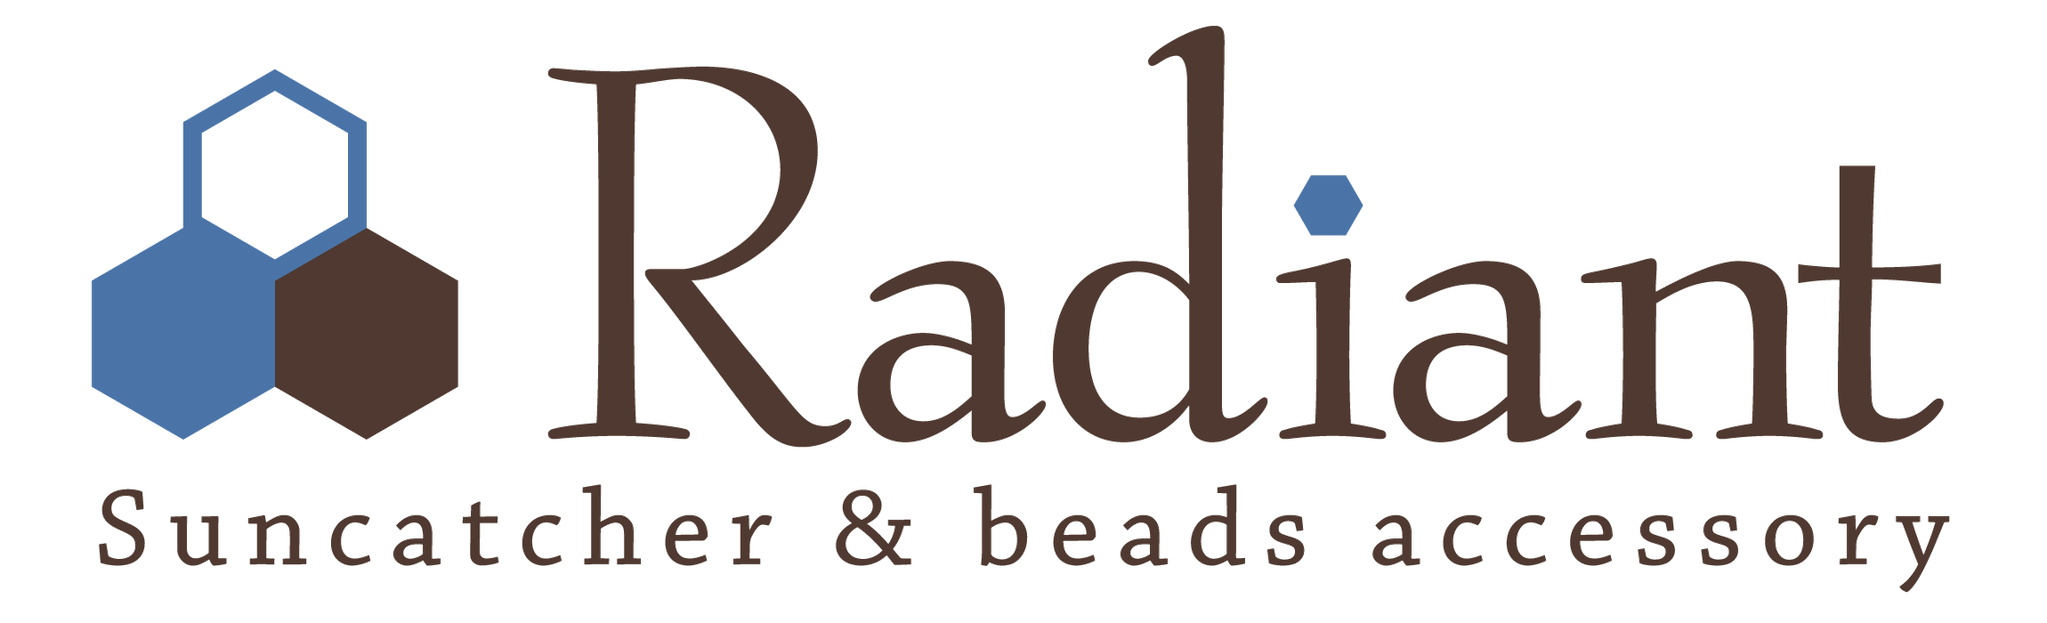 Radiant(BOOTHへ移転しました⇒ https://radiant.booth.pm/)